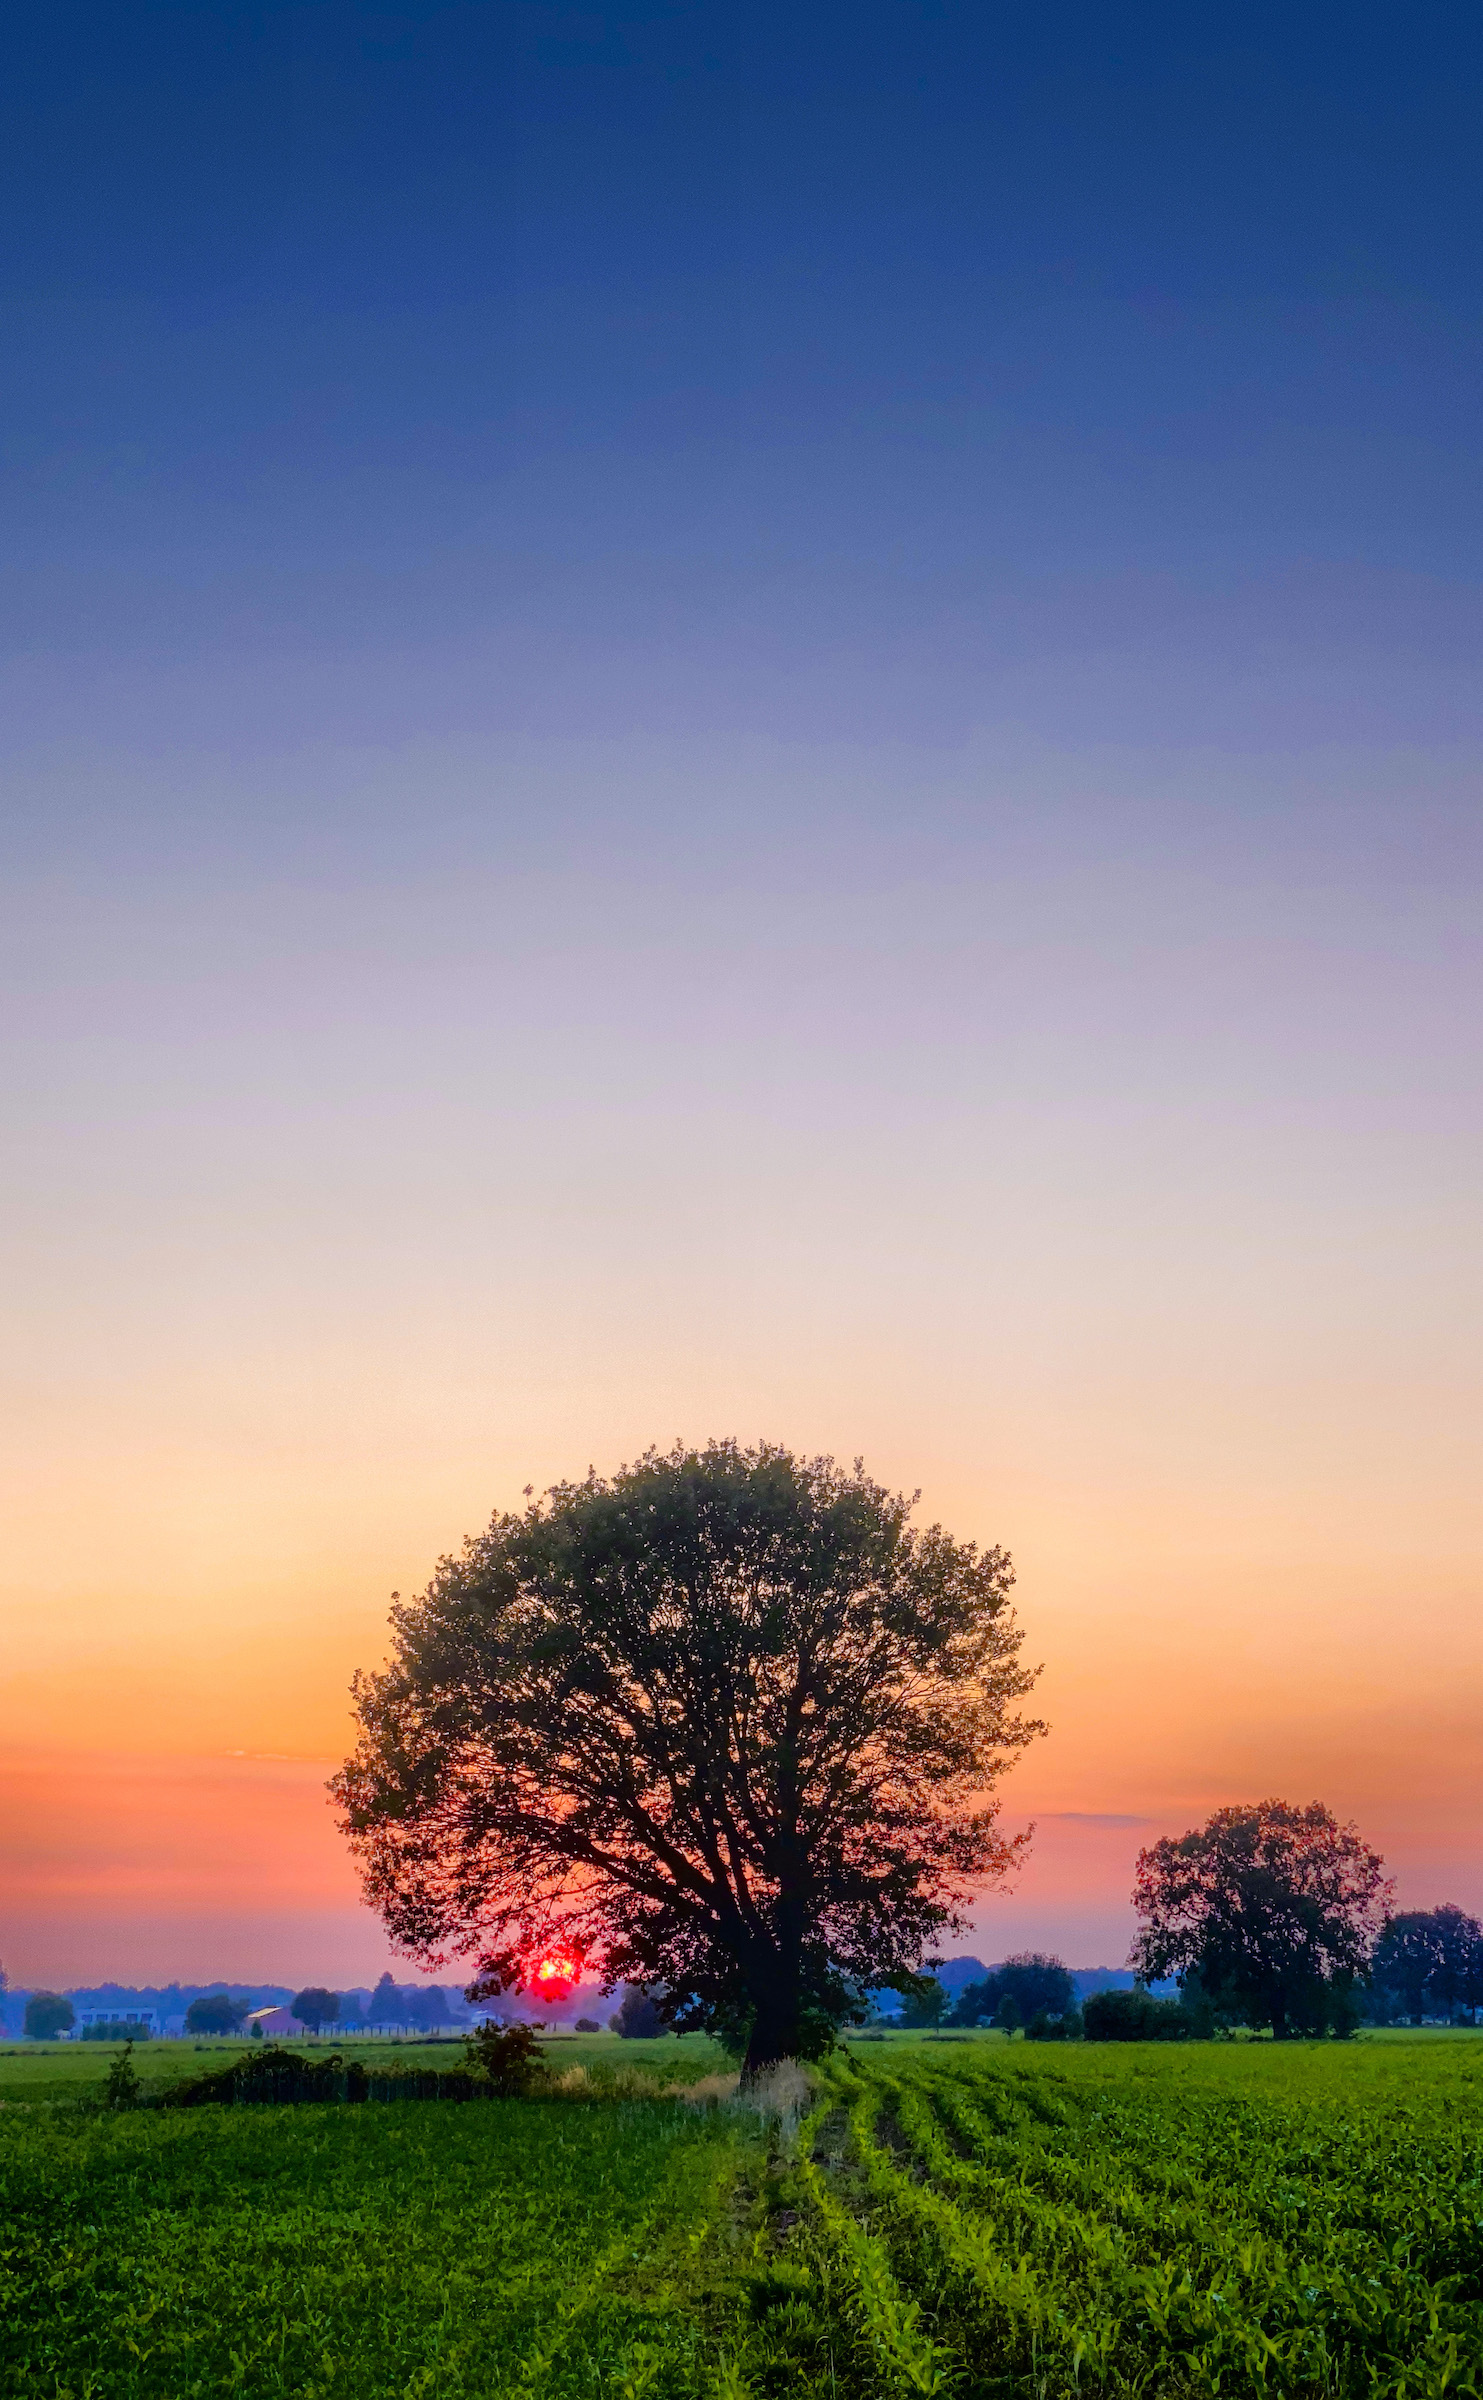 Farmfield tree under a gradient sunset sky